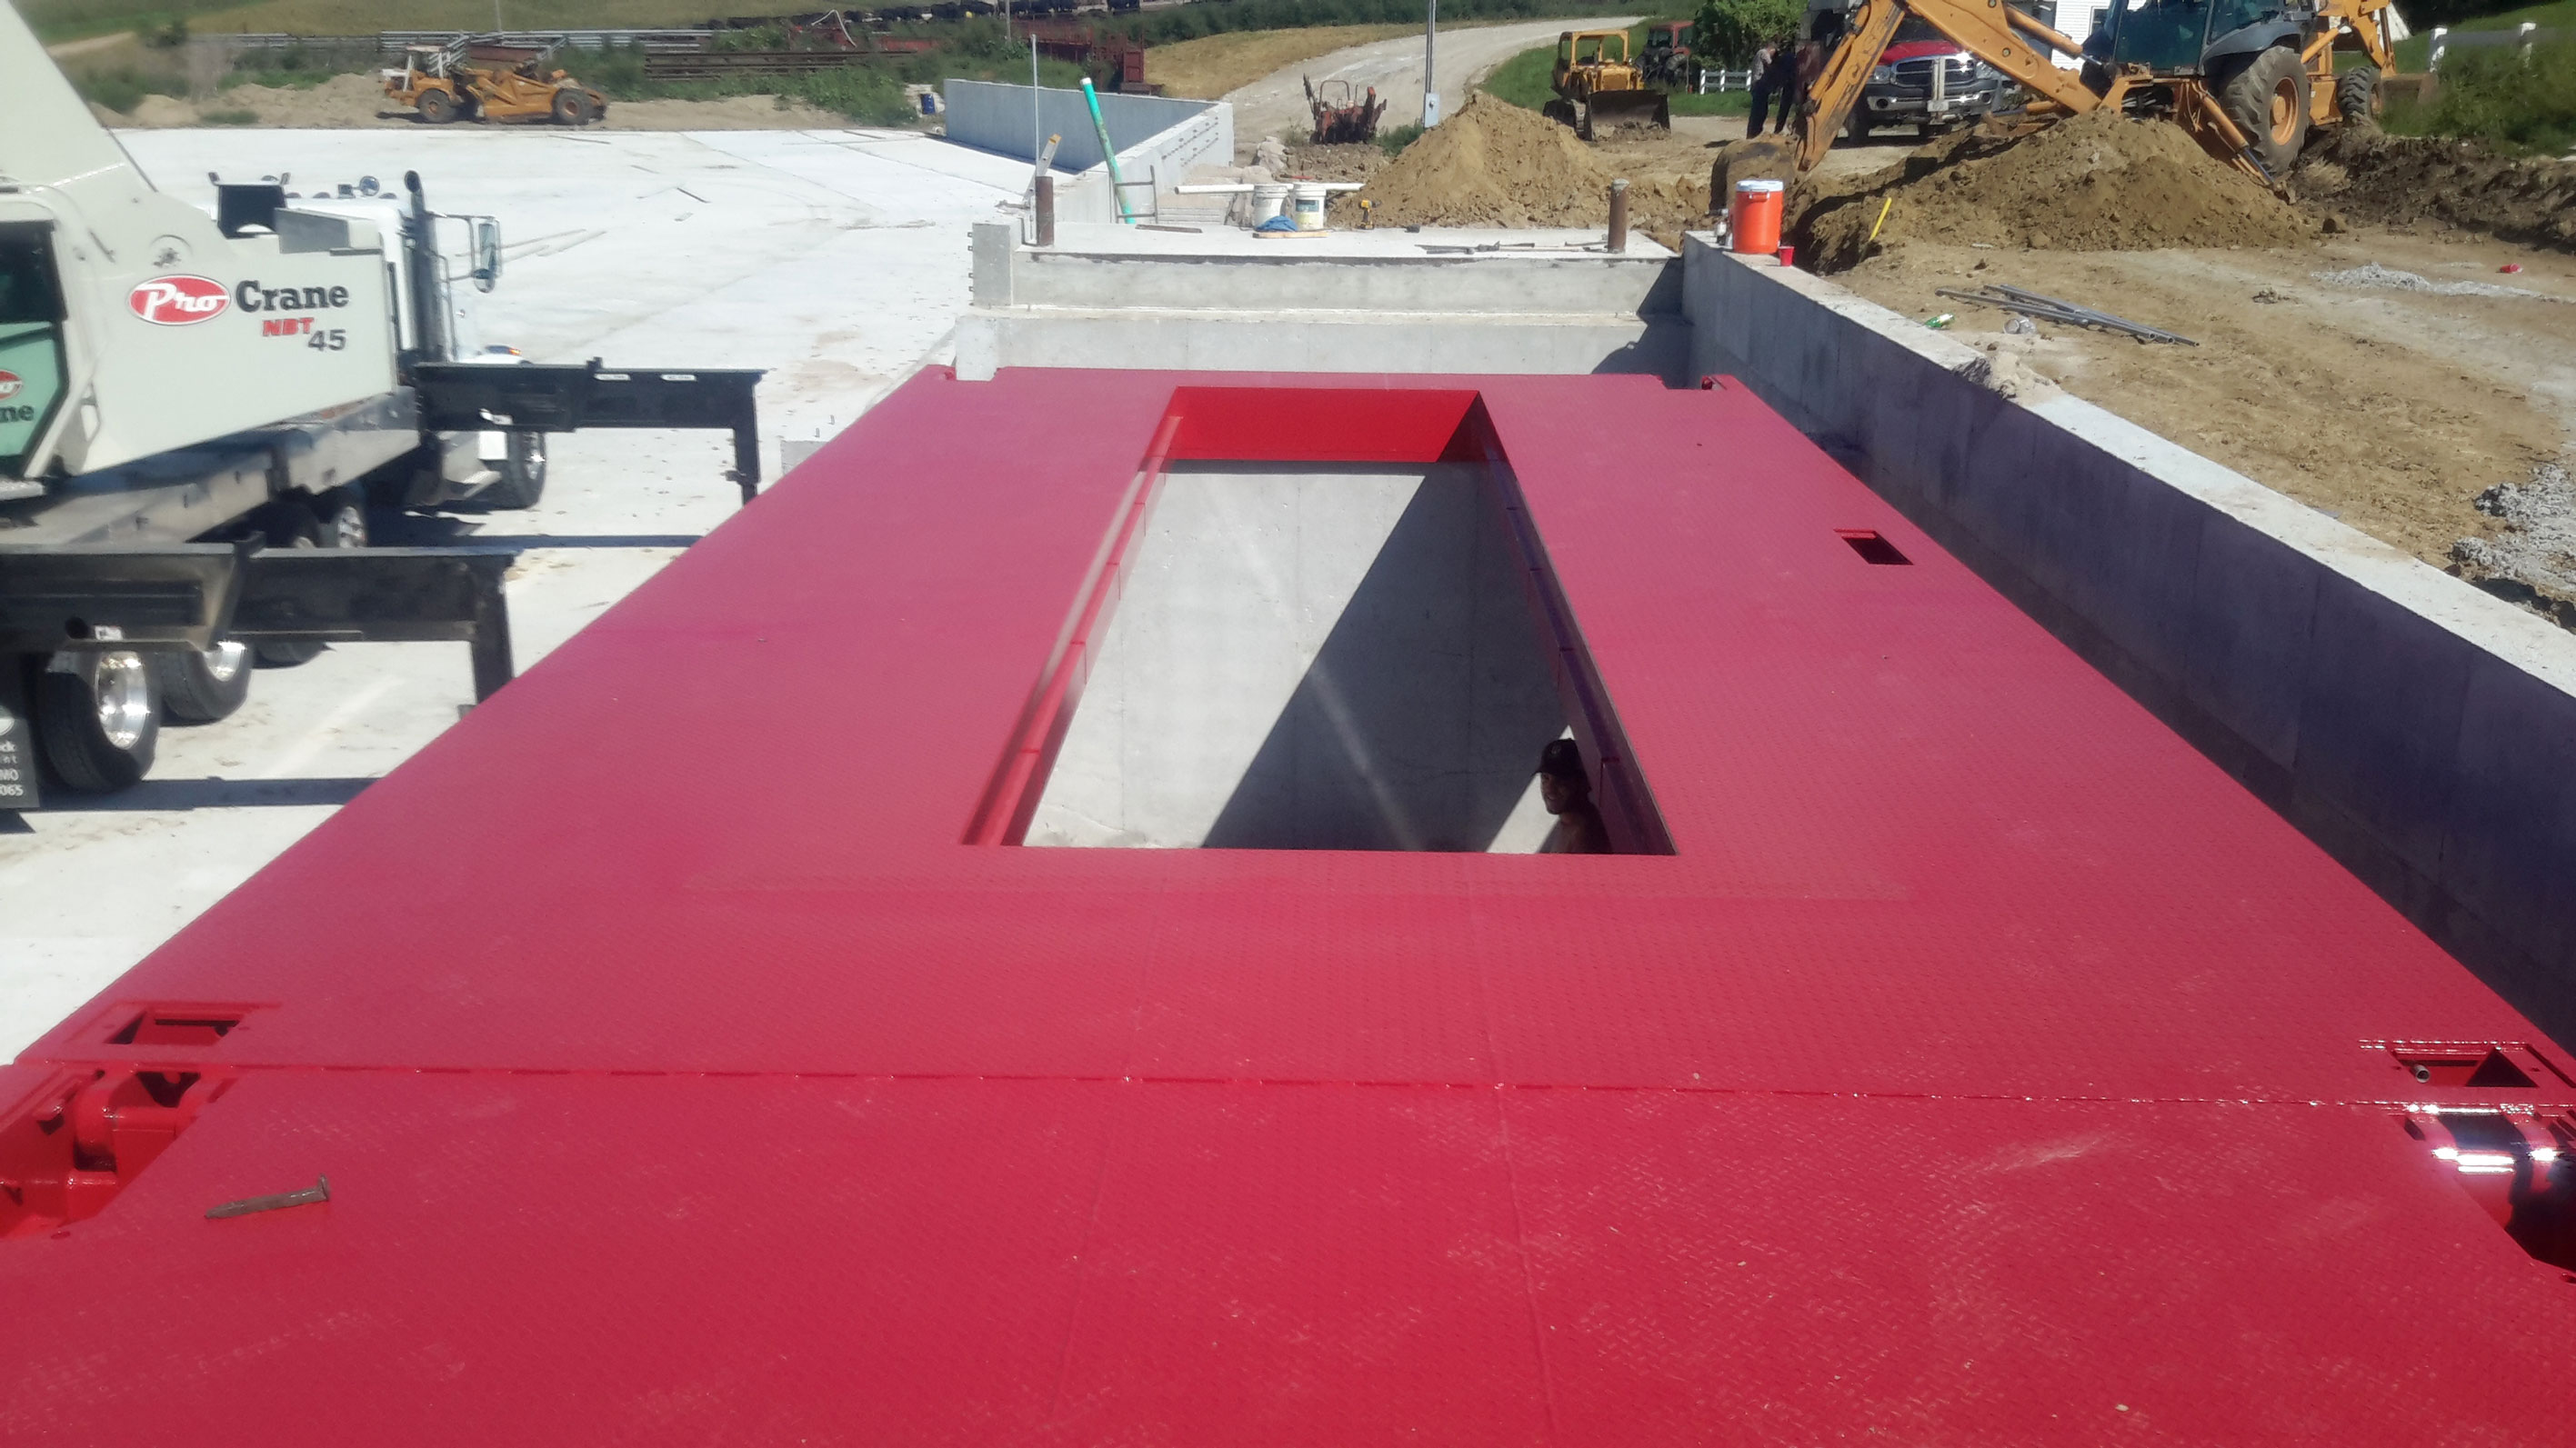 Scales Sales and Service implemented the construction and installation of this Rice Lake steel deck OTR 80'x14' with a grain dump in scale – Clarkson, NE